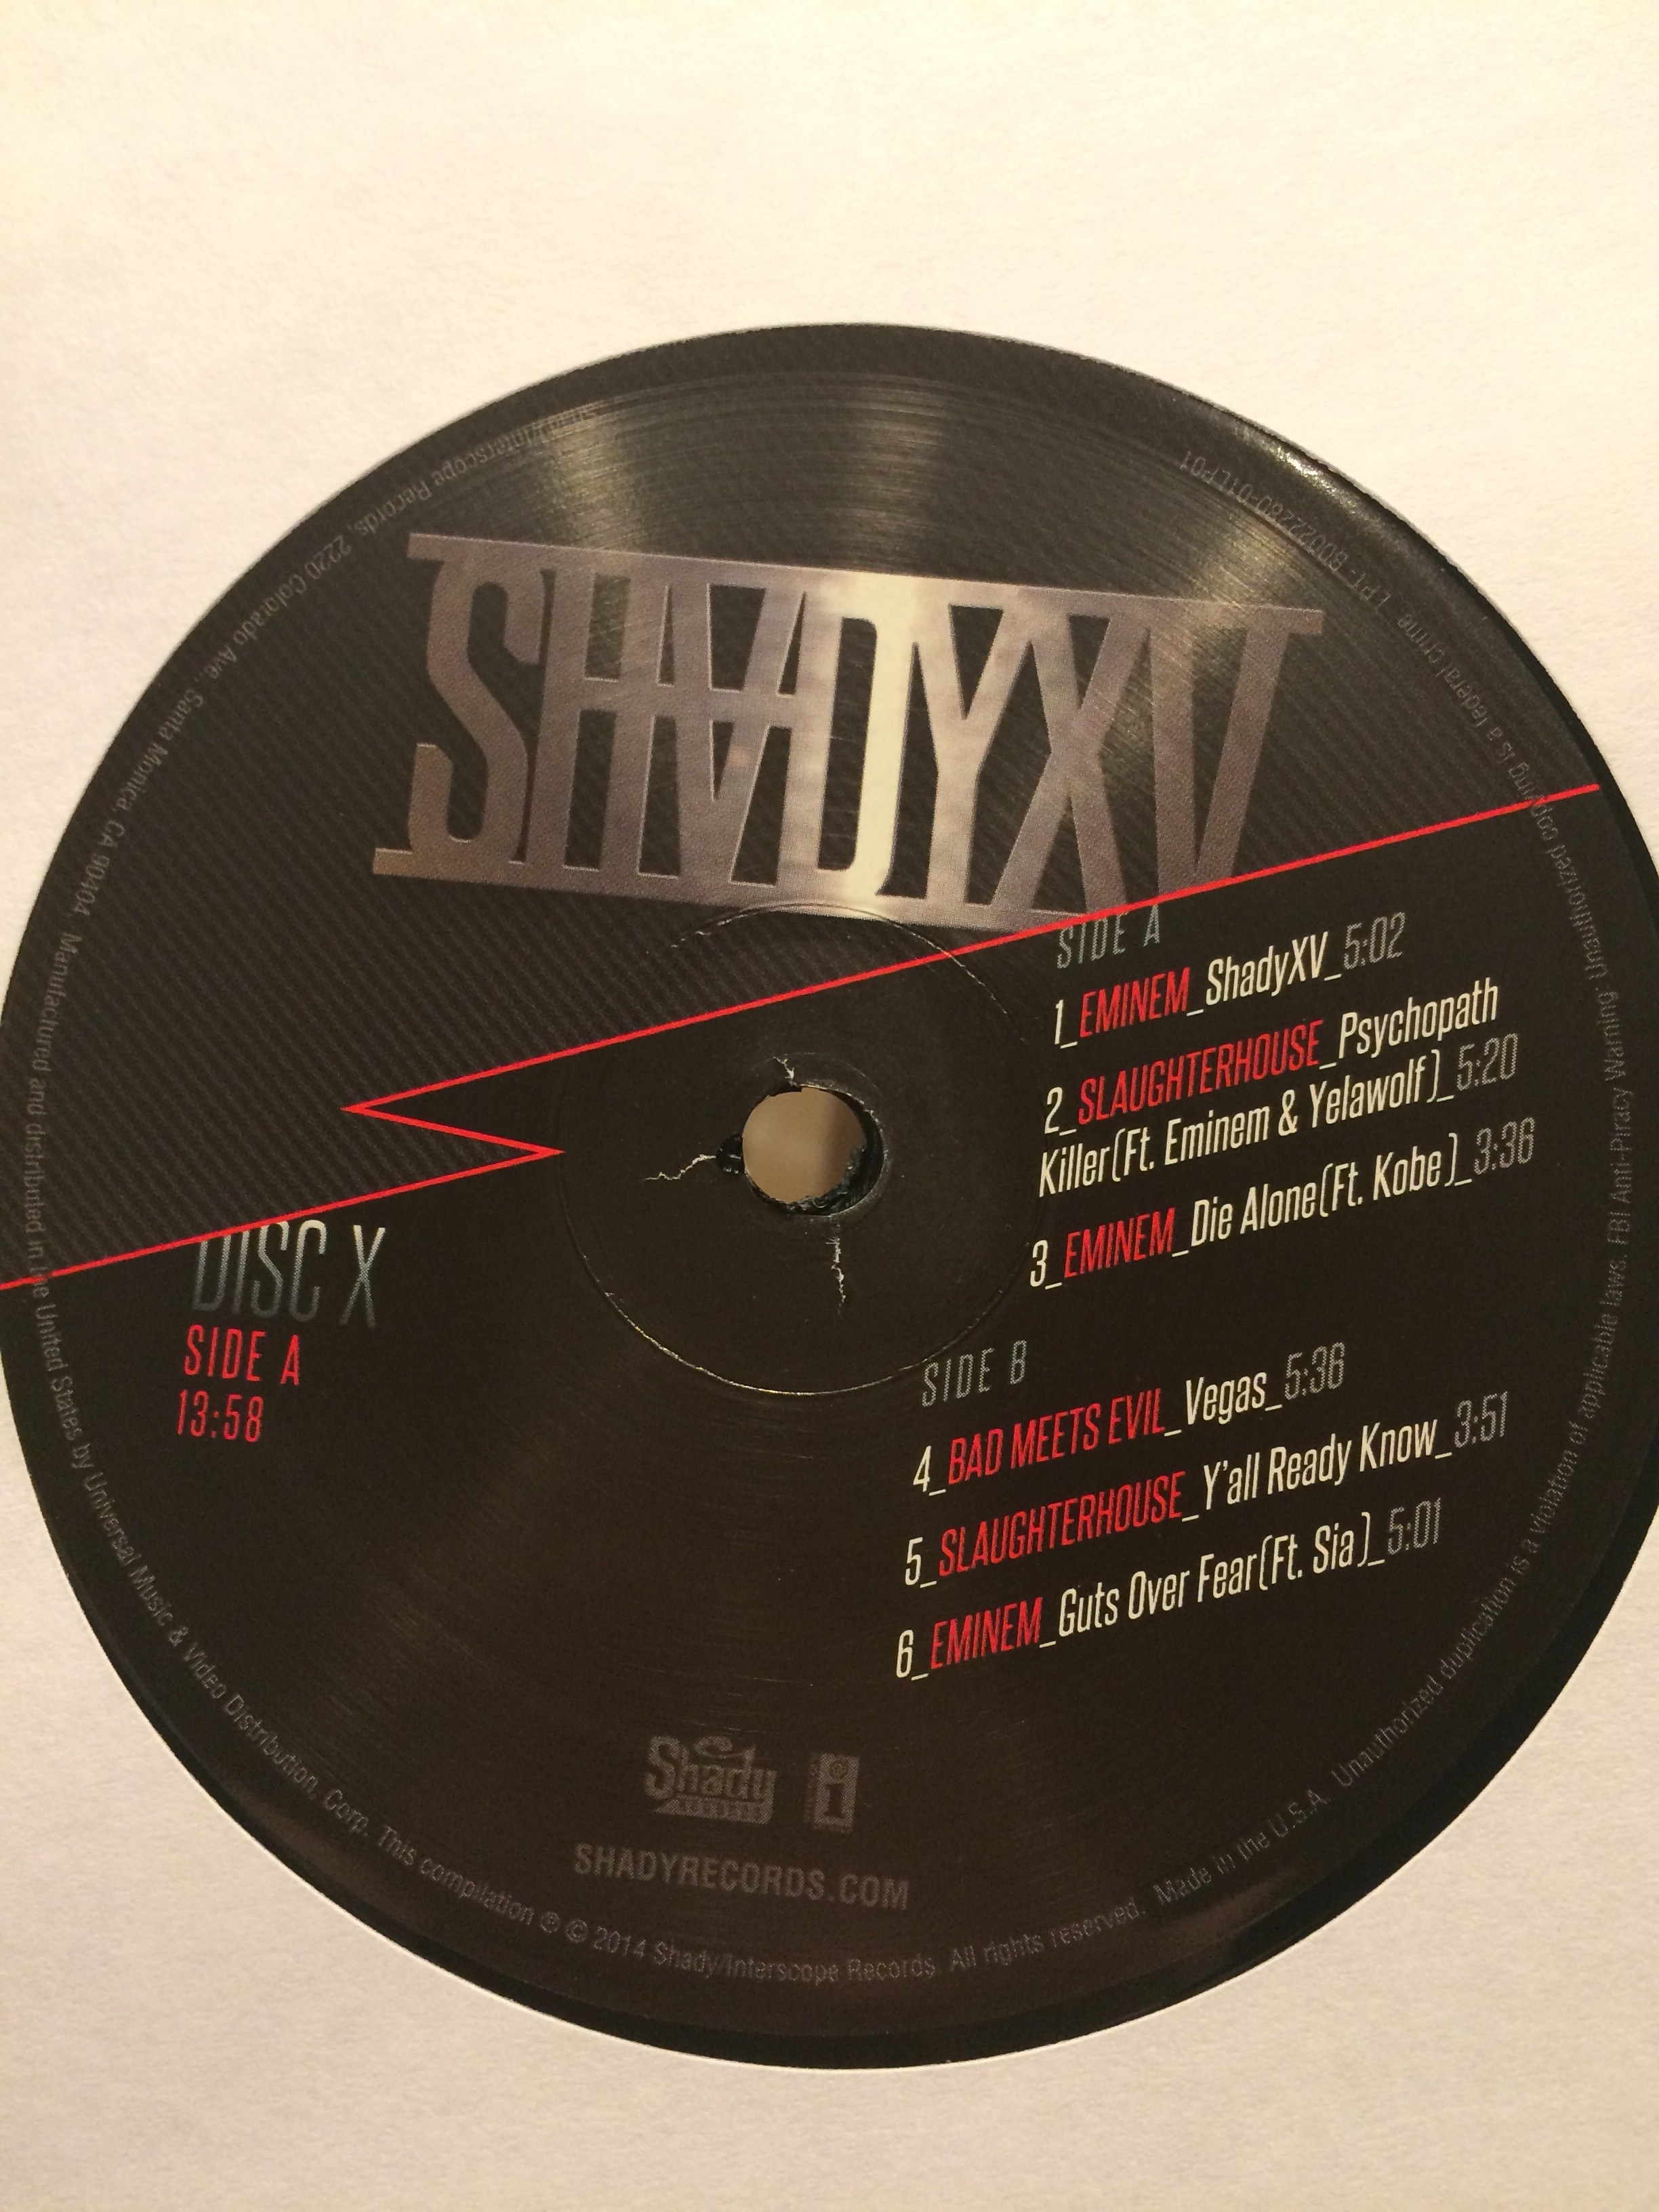 SHADYXV Vinyl by Eminem.PRO Eminem Shady Records. Photo by Igor Basenko